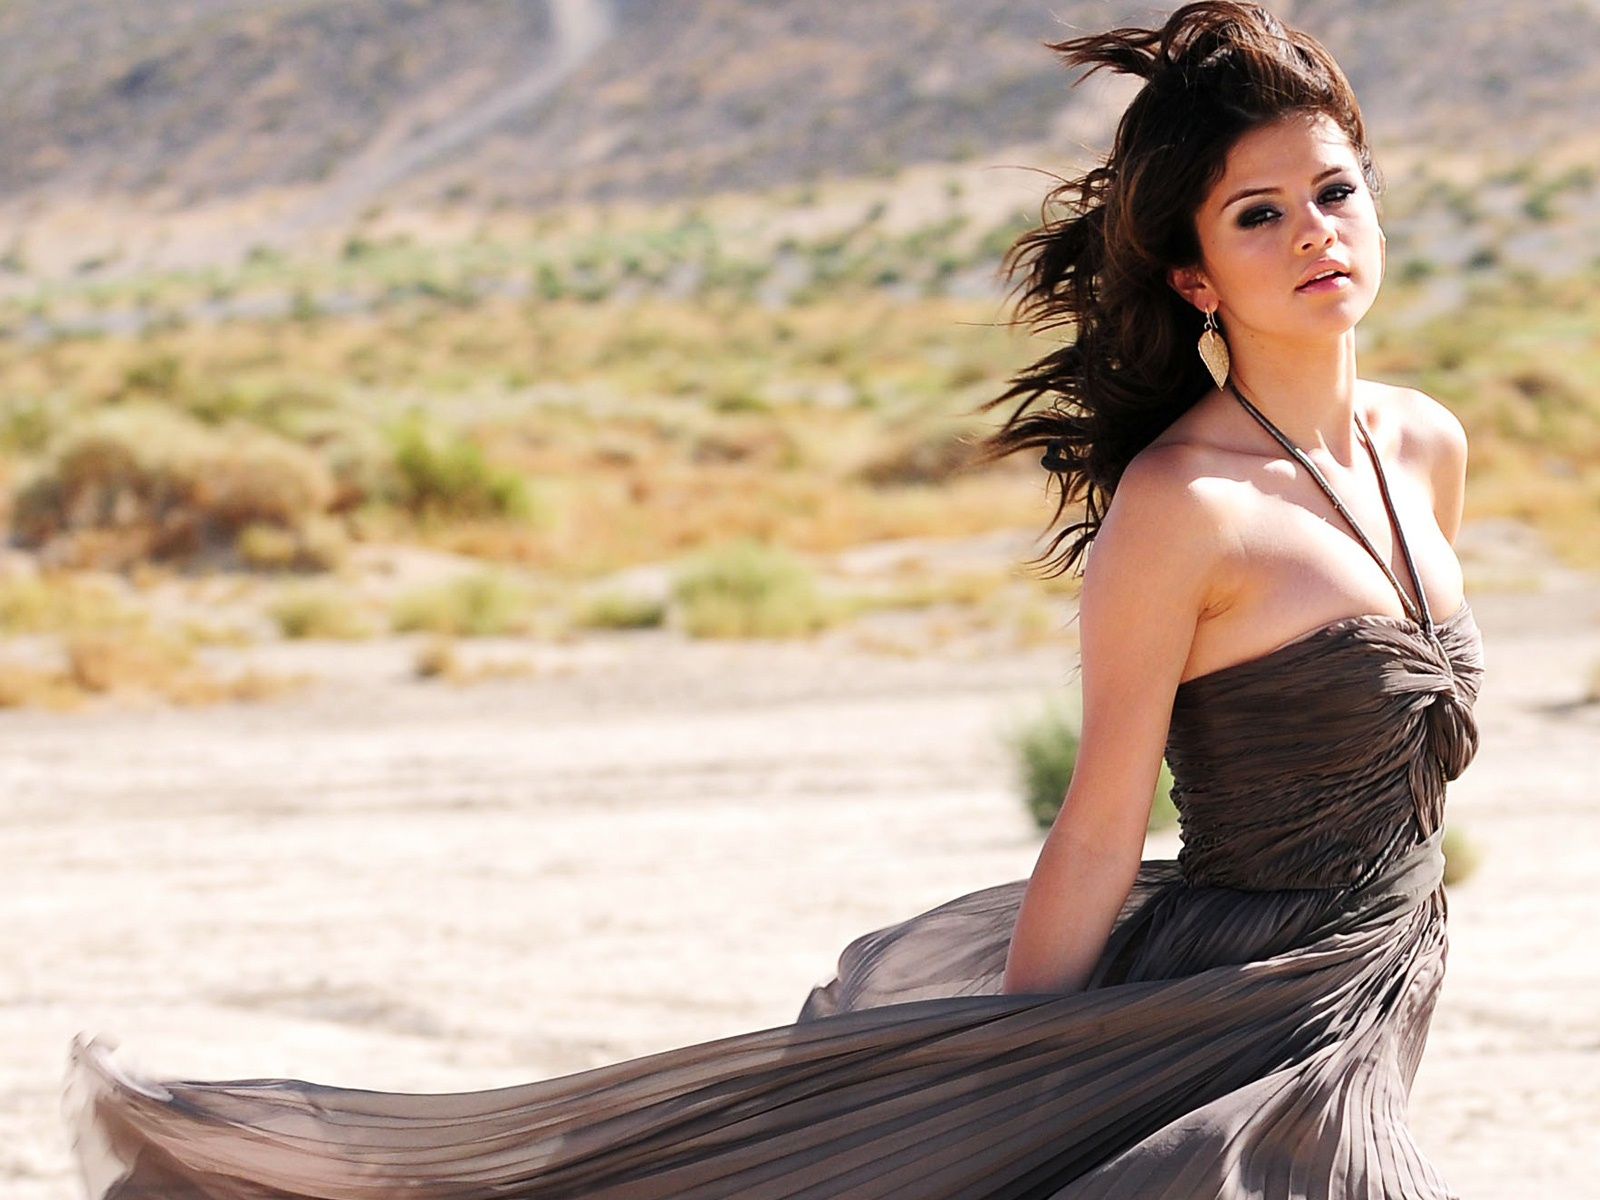 Selena Gomez A Year Without Rain 2010 wallpaper